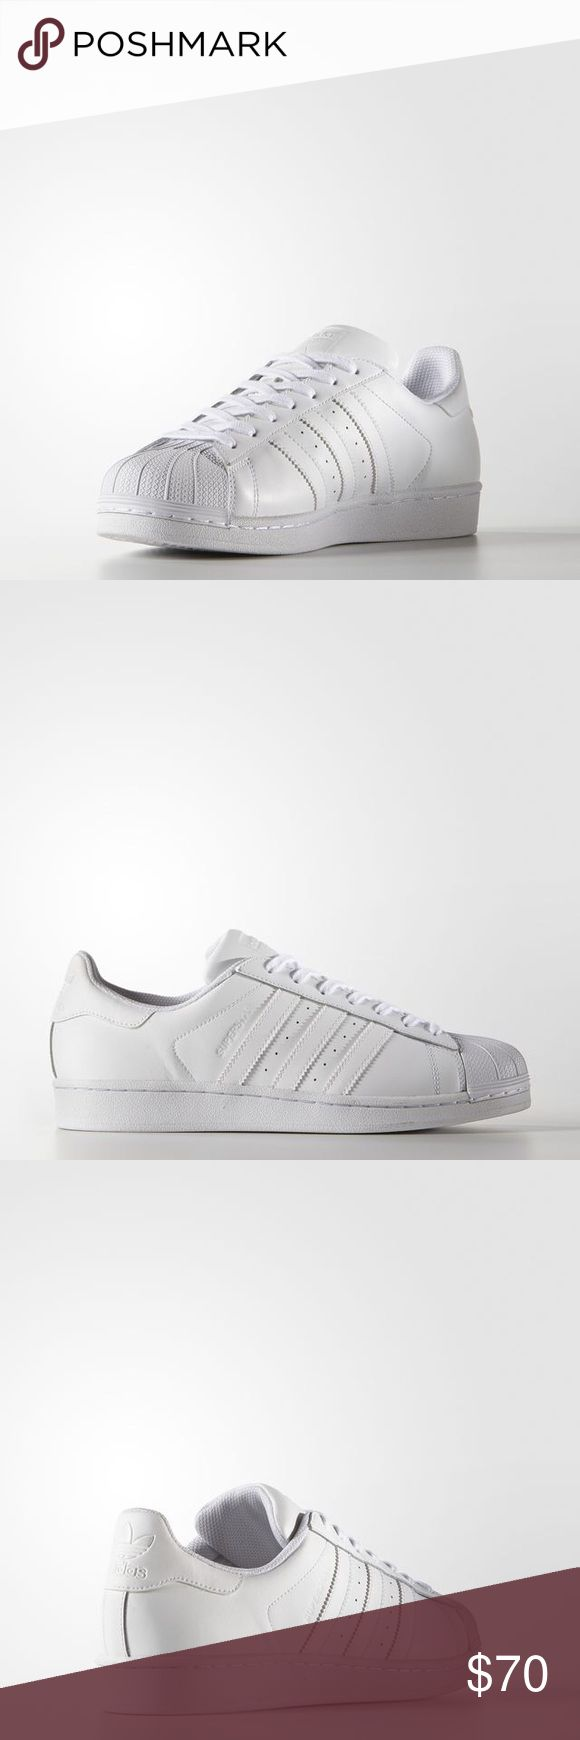 Adidas Superstar all white sneakers New, unworn and still in the box Adidas Shoes Sneakers